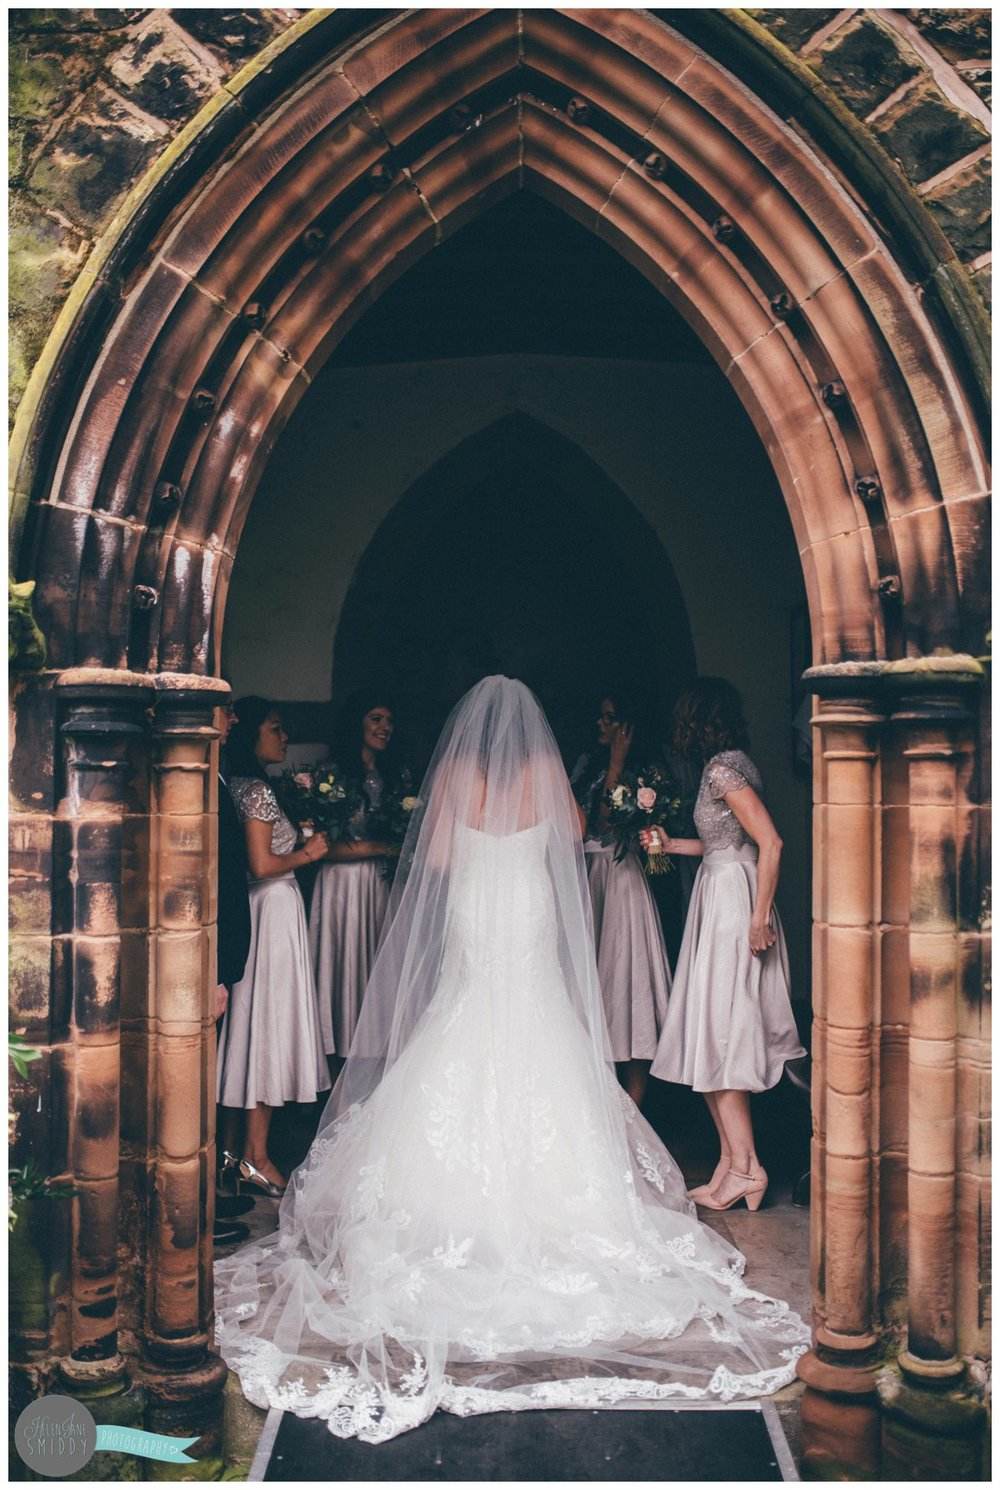 The back of the bride's beautiful Maggie Sottero gown as she stands in the archway at Toft Church in Knutsford.